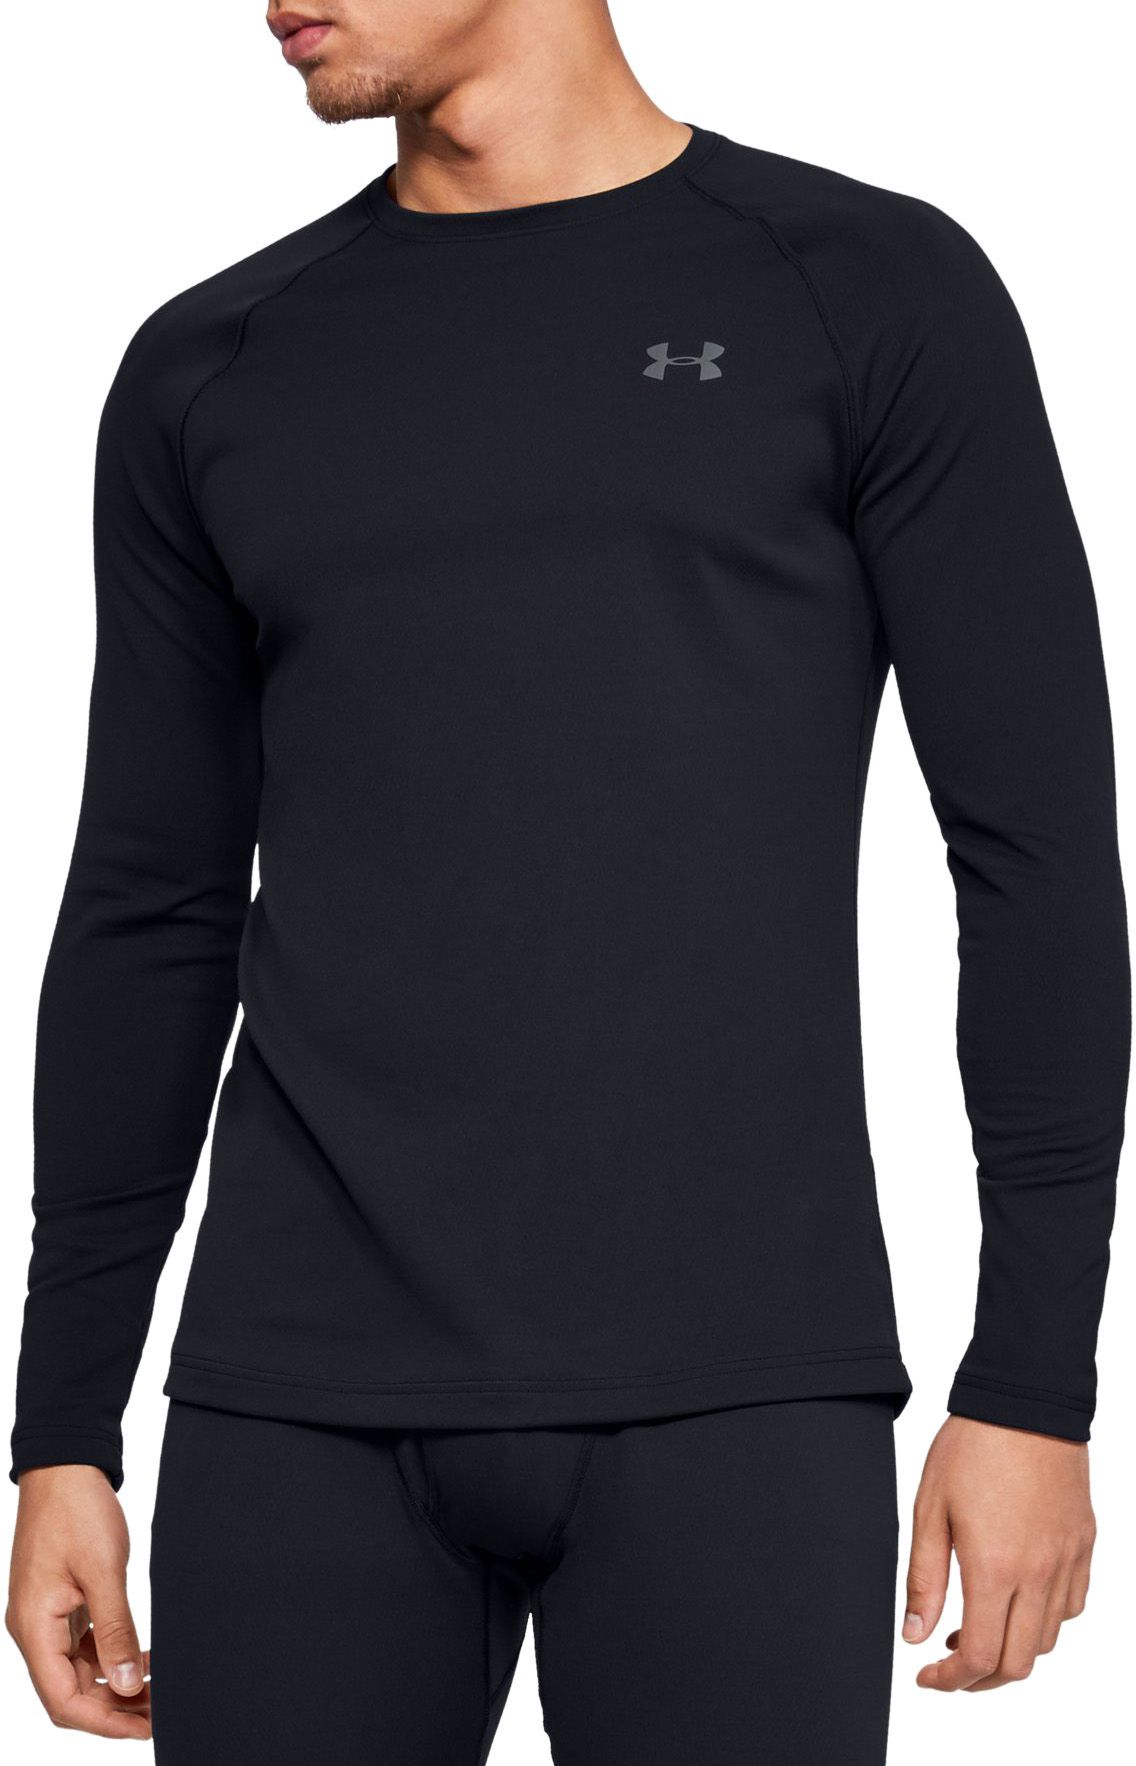 Under Armour Men's Packaged Base 2.0 Crewneck Baselayer, Size: Small, Black